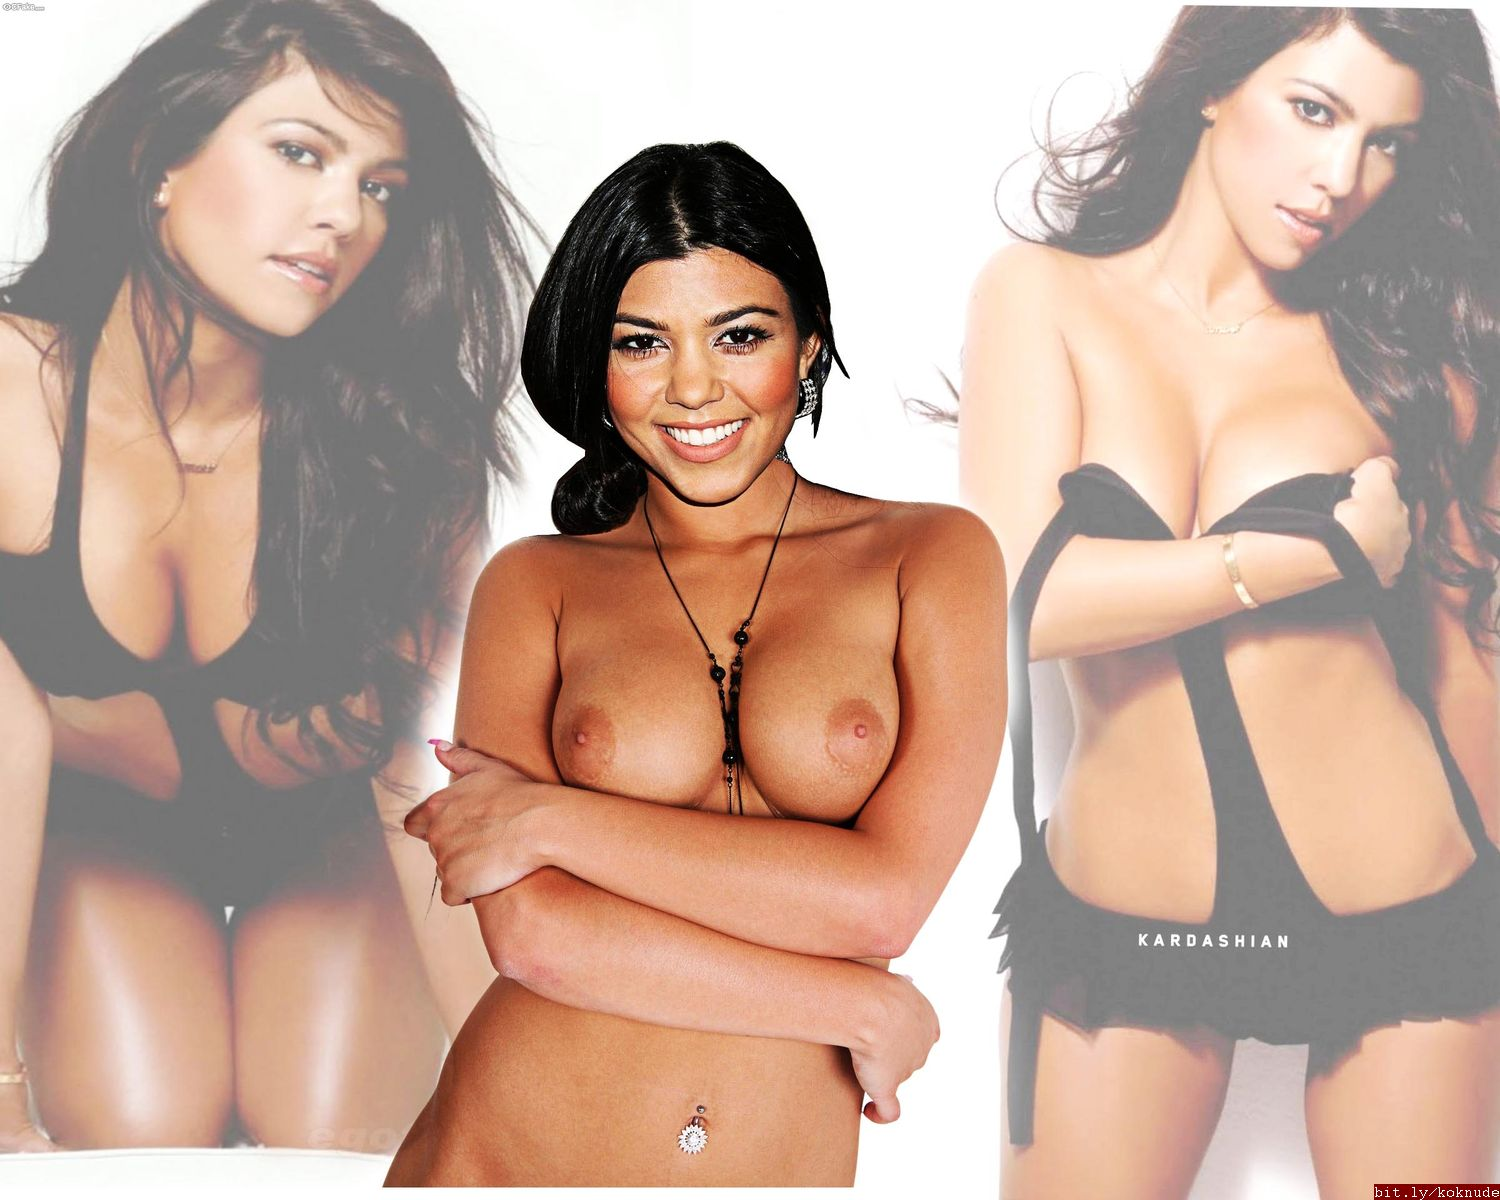 Kardashian and jenner nude photos